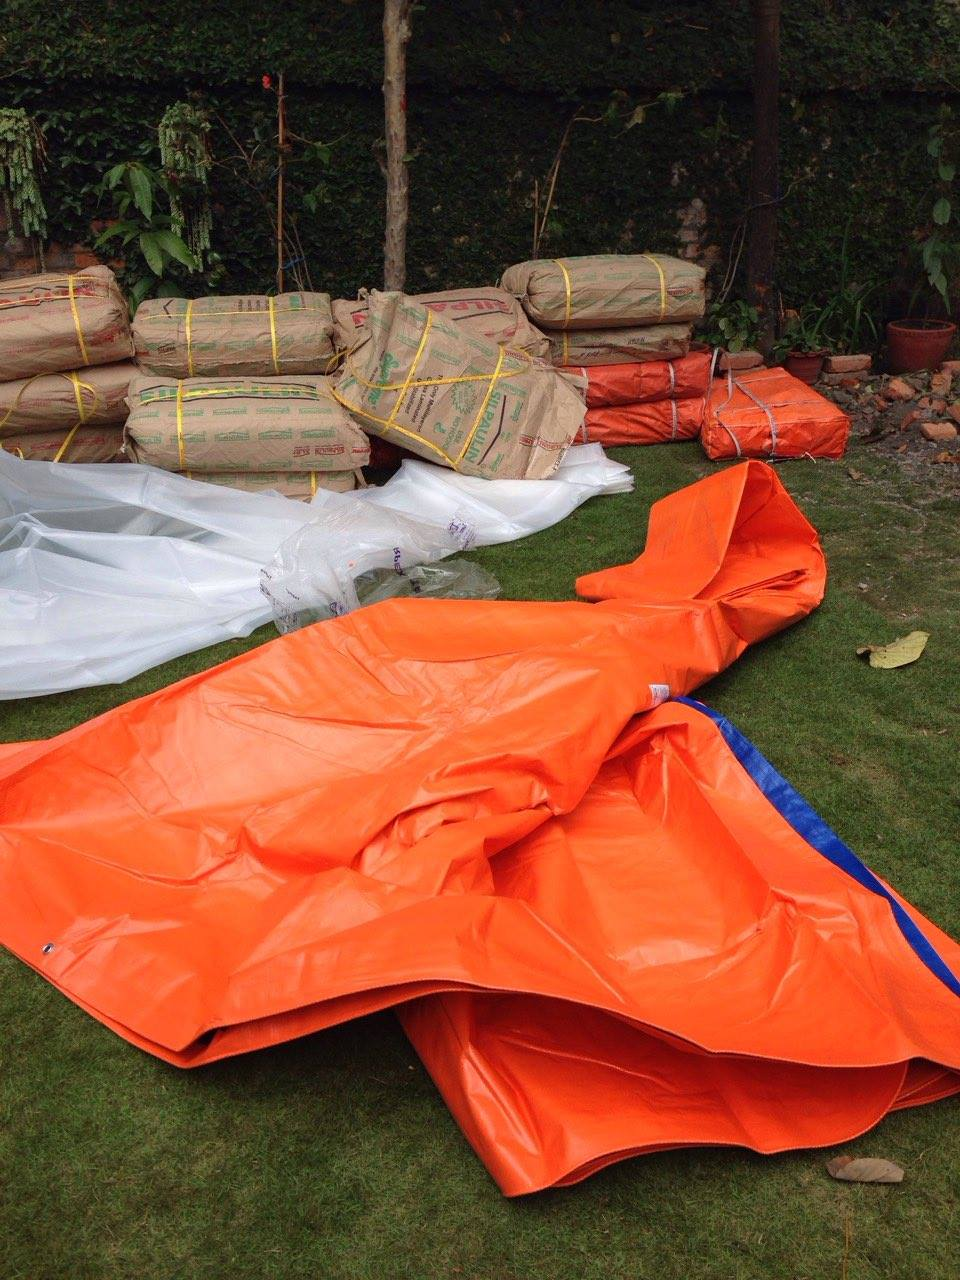 Tarps and supplies needed as emergency aid.